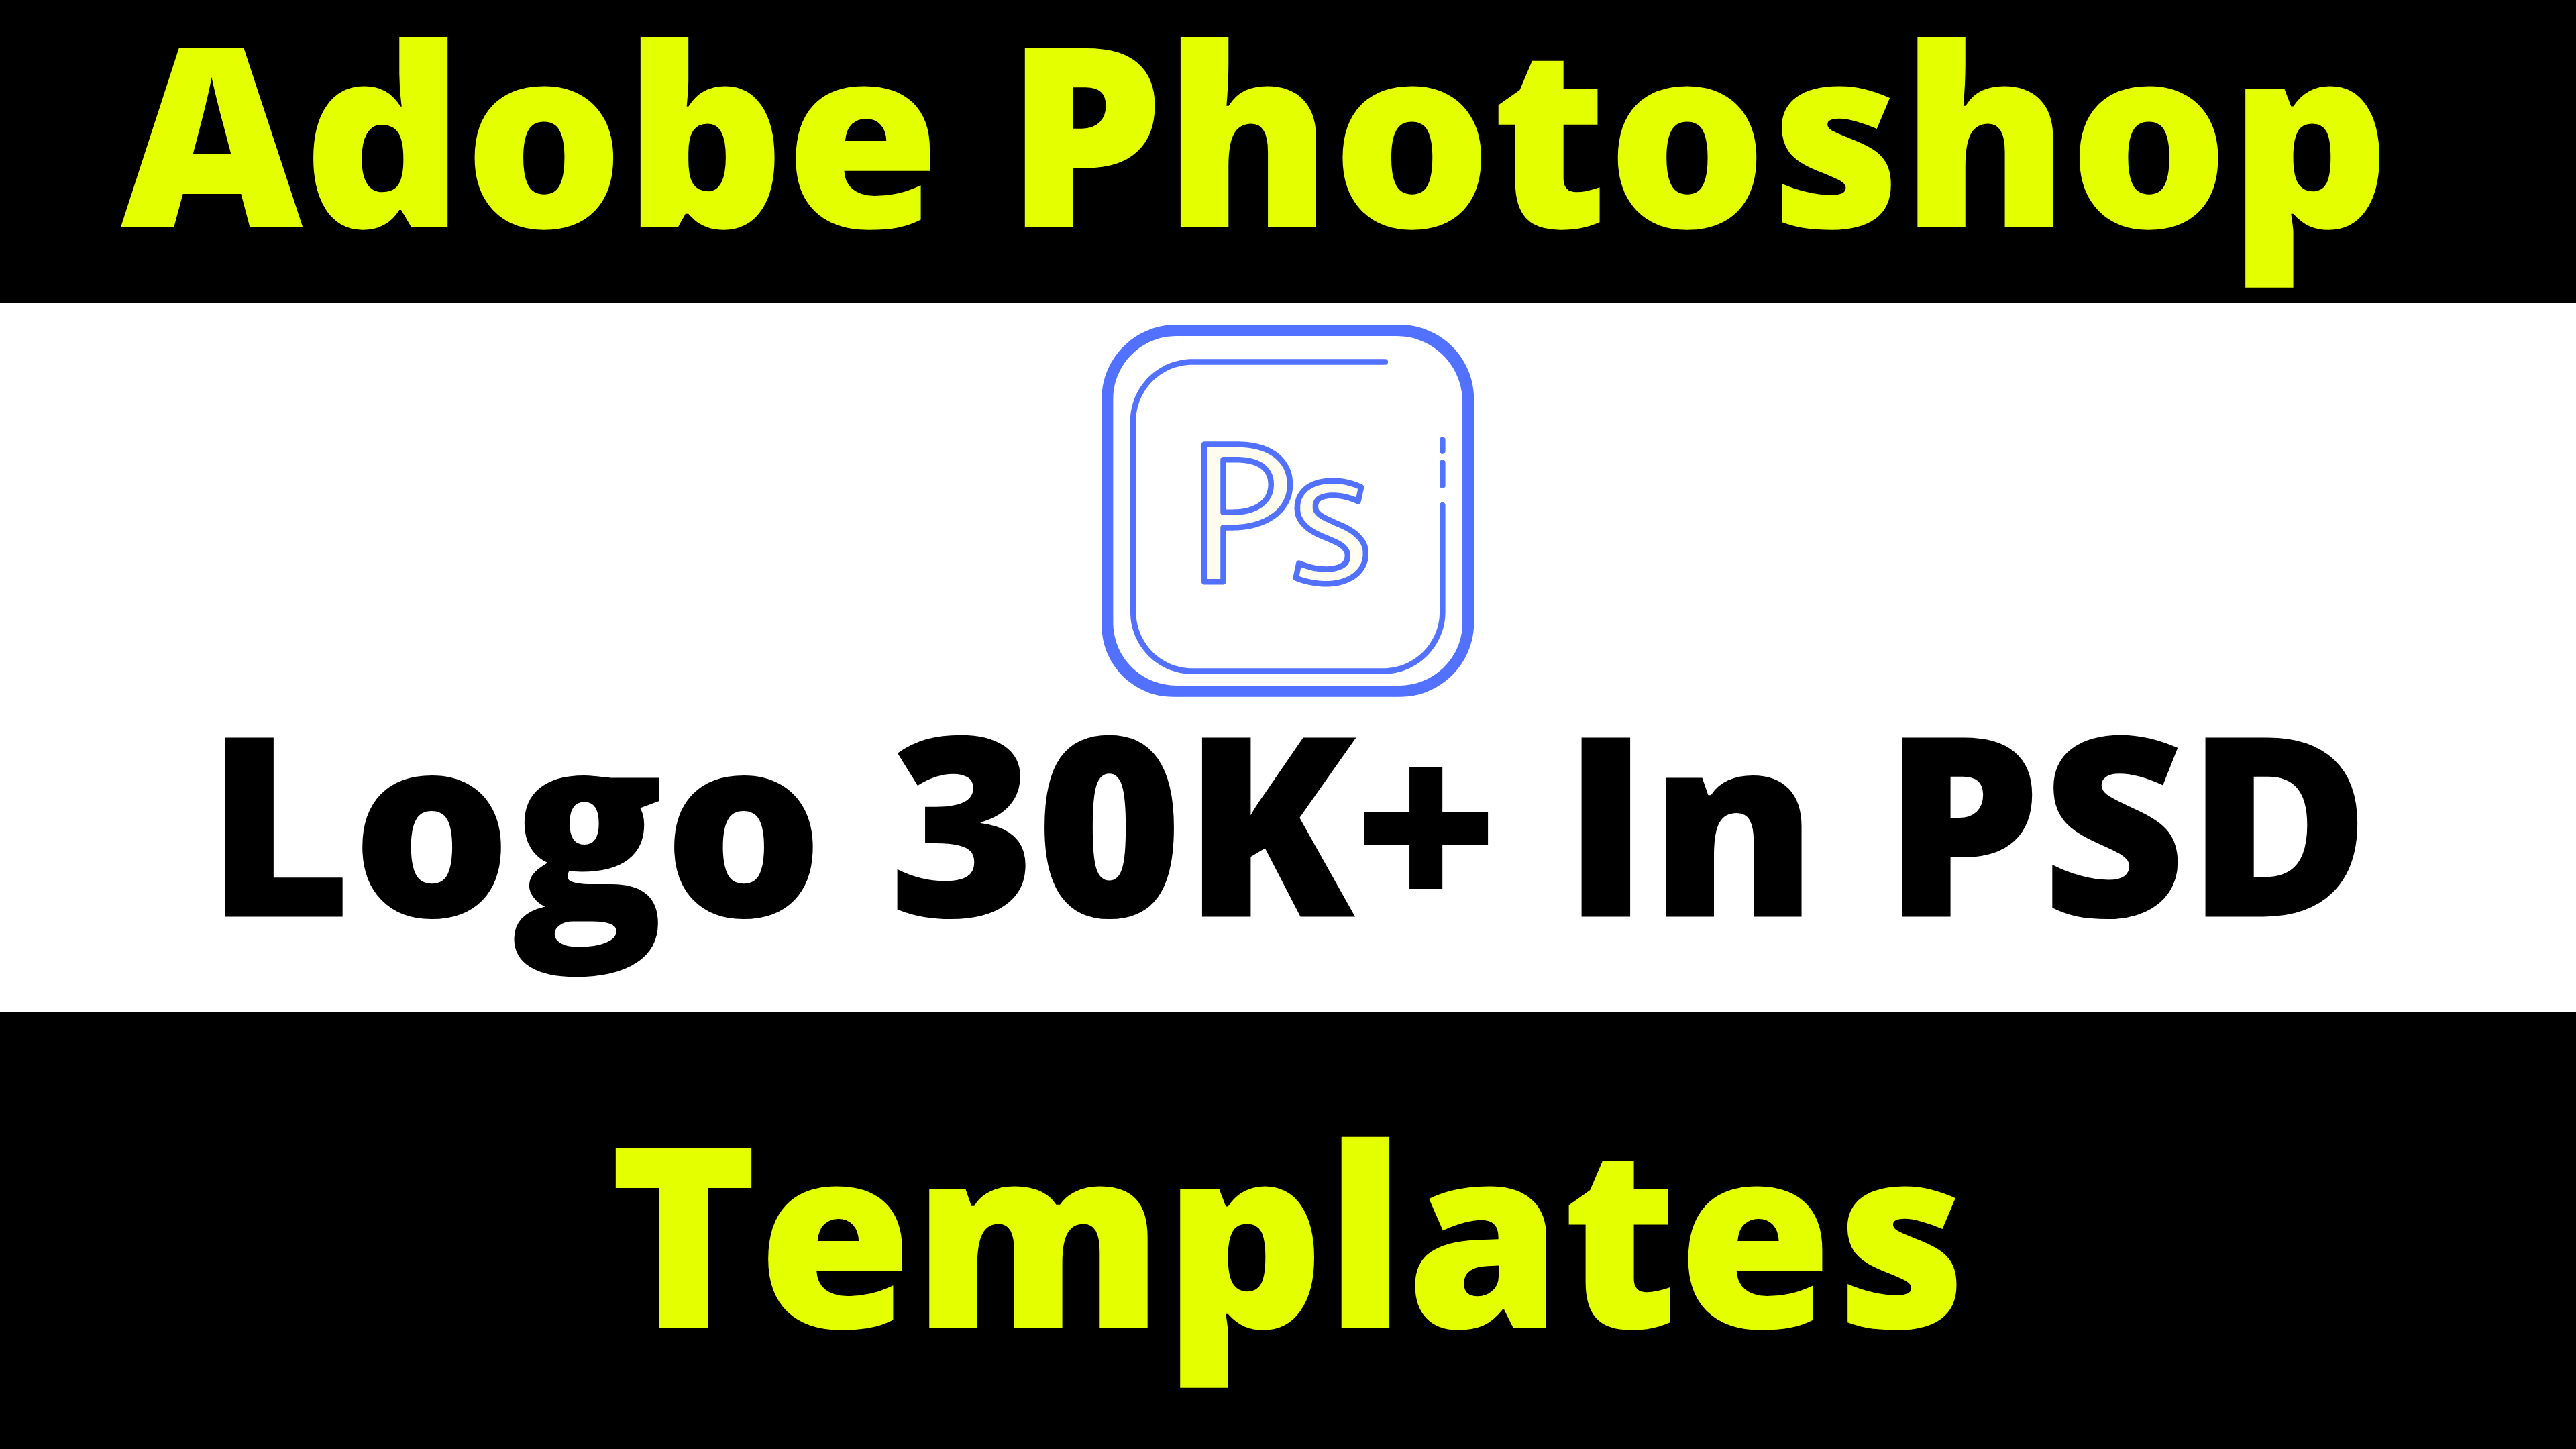 Adobe Photoshop Logo 30K+ Templates In PSD